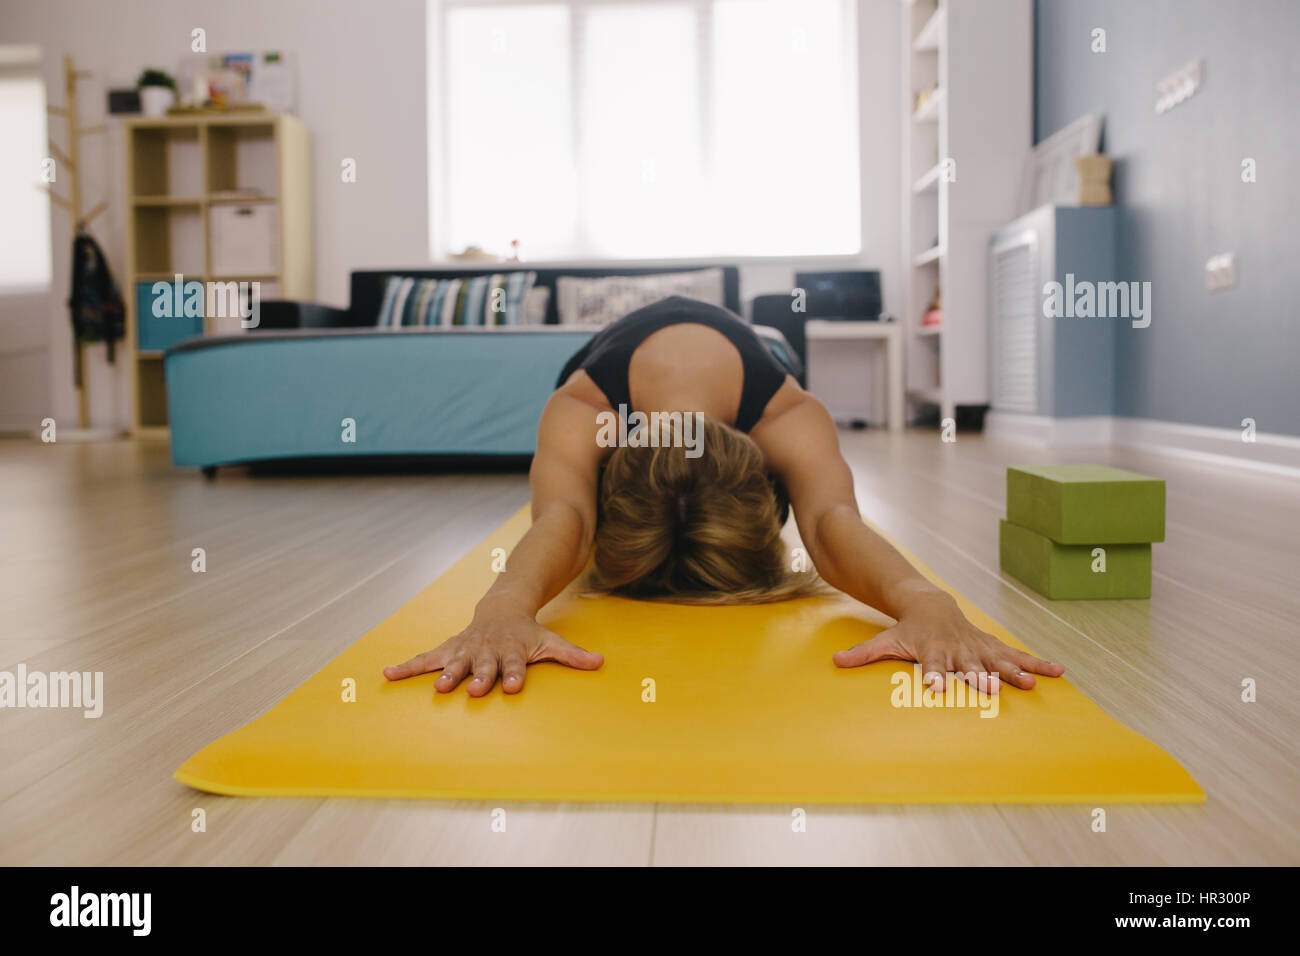 Woman doing stretching exercise on yoga mat. Fitness female performing yoga on exercise mat at gym. Child Pose, Stock Photo